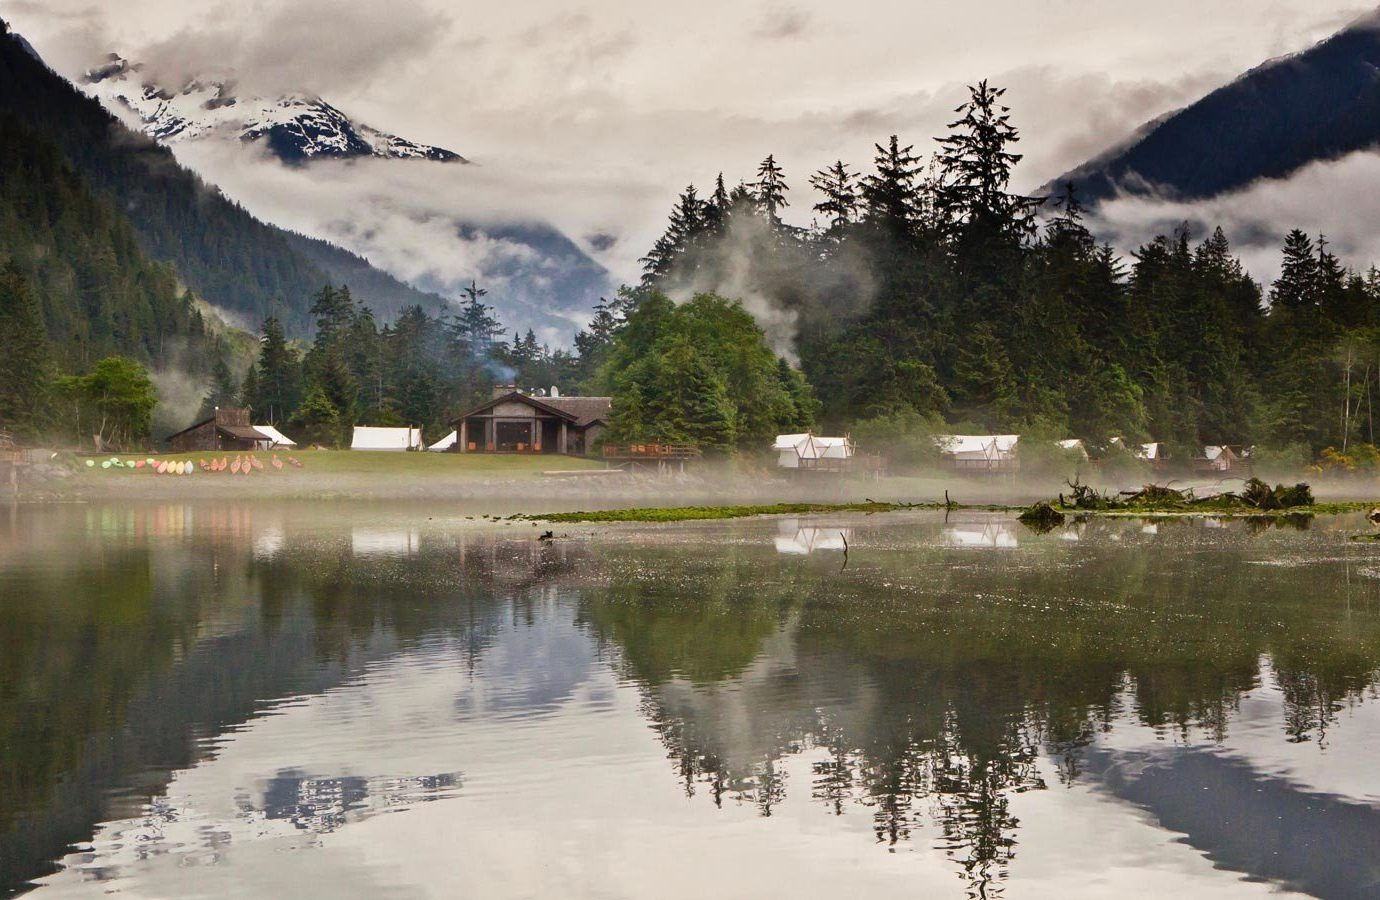 Glamping Luxury Travel Outdoors + Adventure Trip Ideas Weekend Getaways outdoor water Nature reflection mountainous landforms mountain Lake sky wilderness cloud tree pond mountain range morning bank landscape River Winter plant mount scenery loch alps surrounded hillside